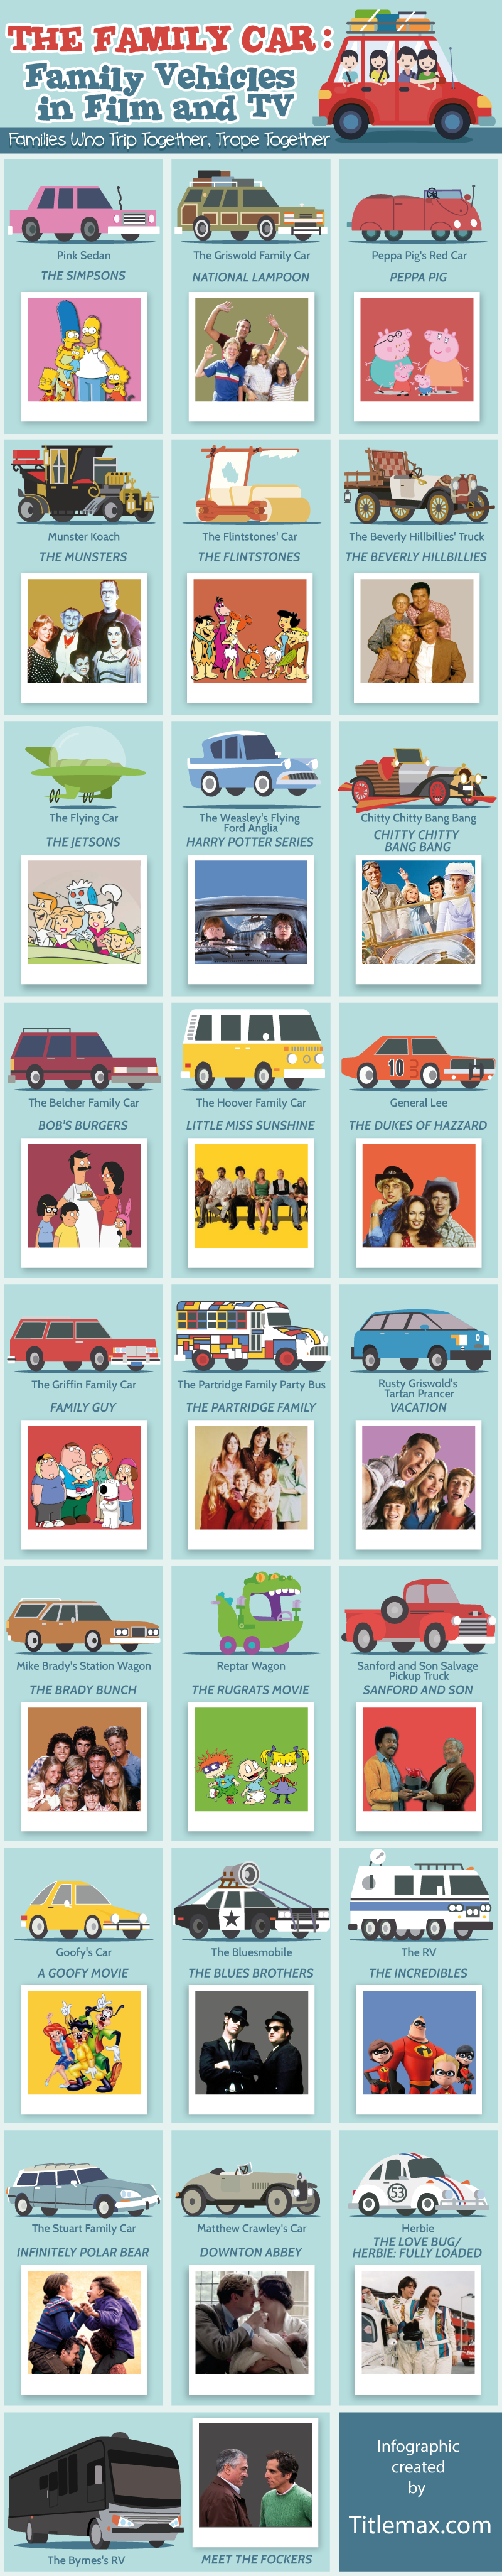 The Family Car: Family Vehicles in Film and TV